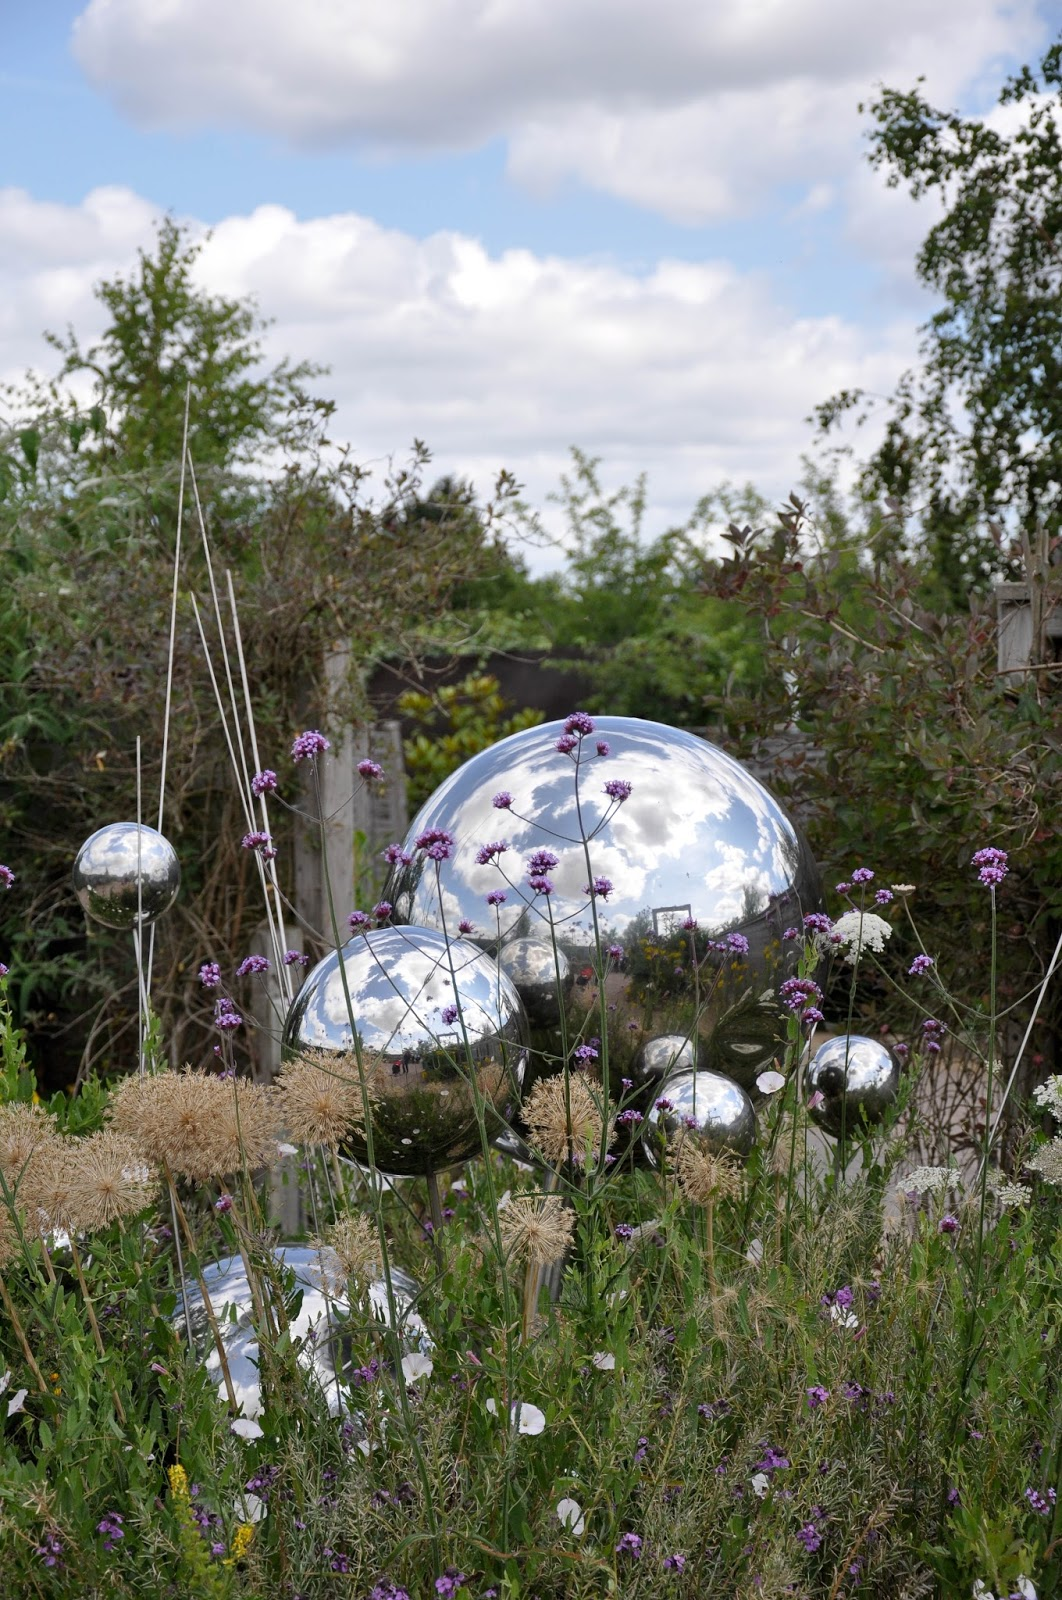 Designer Gardens, The Butterfly World Project, St. Albans, Herts, UK